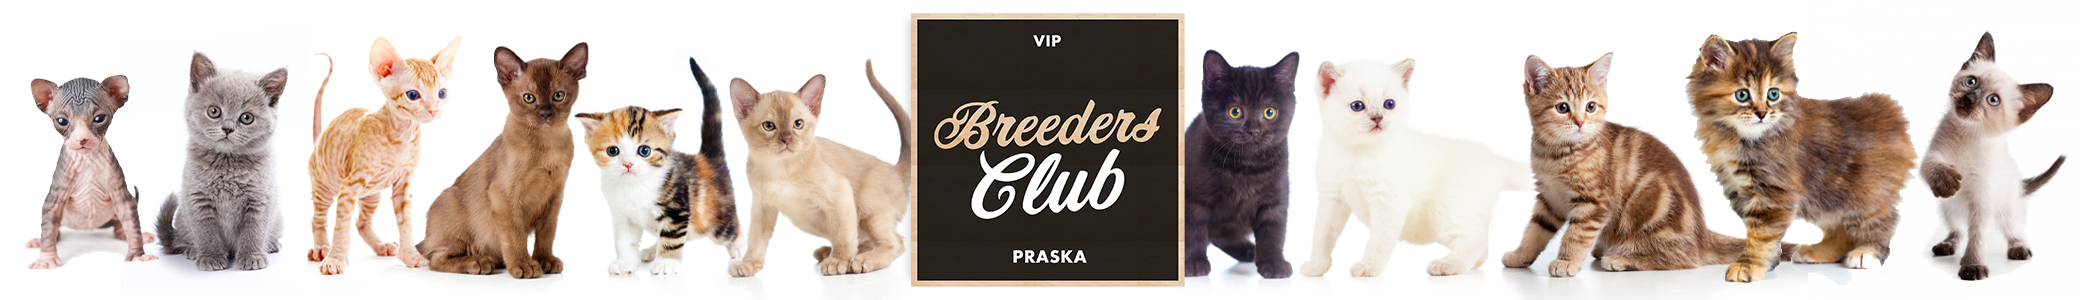 Breeders Club